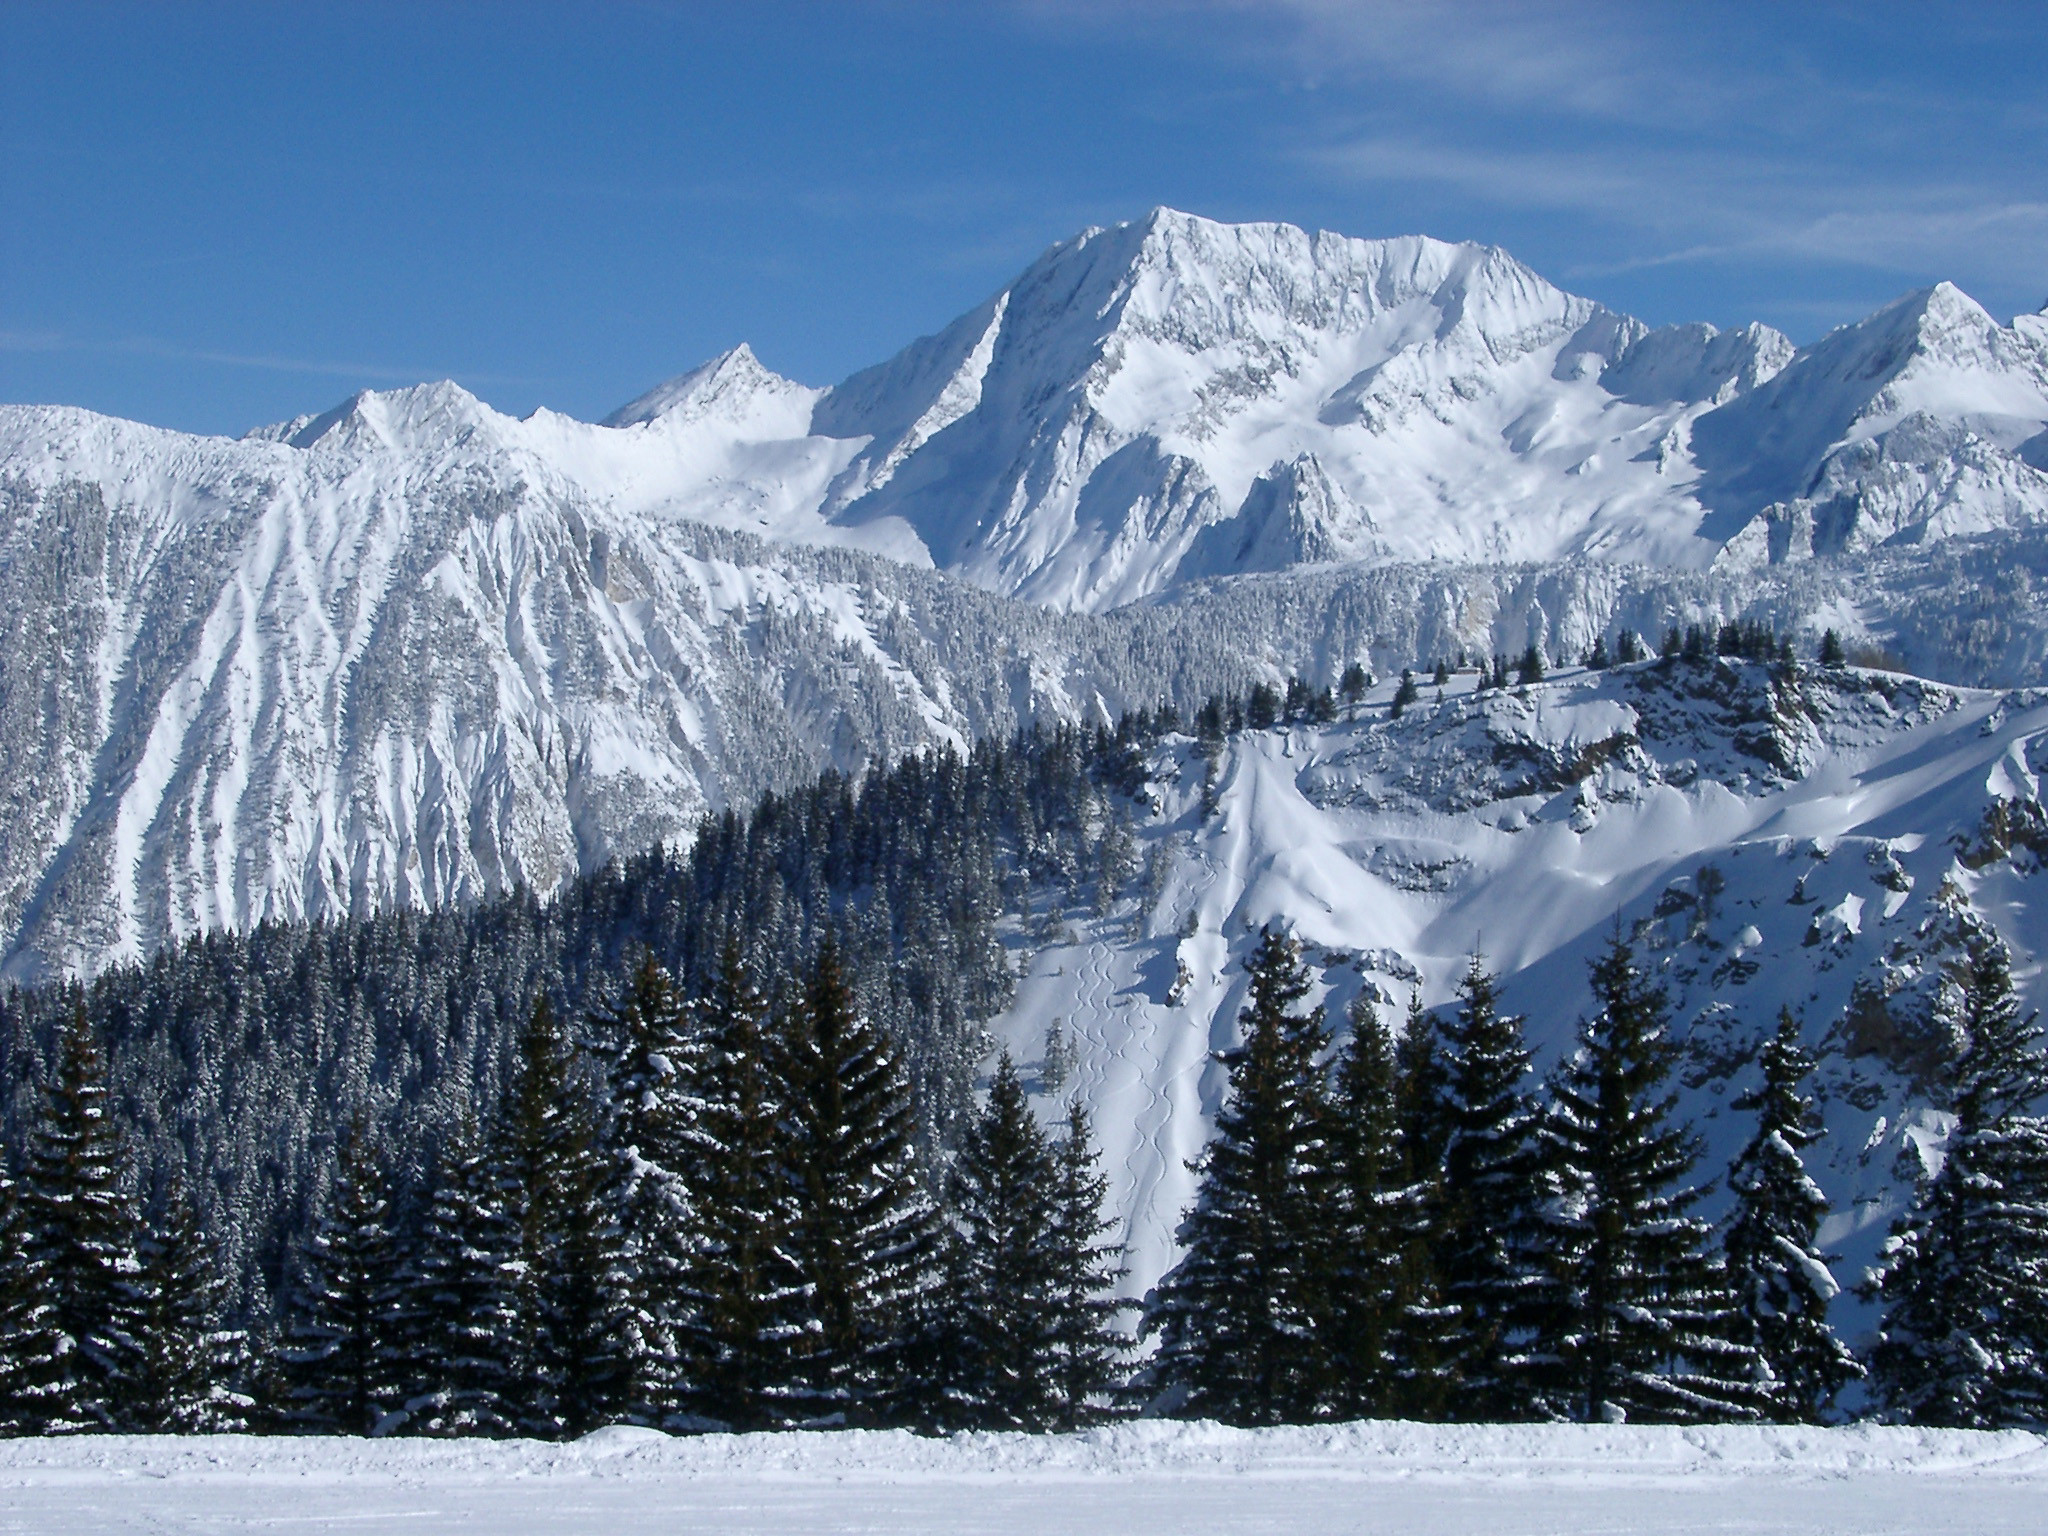 Free Stock photo of Steep Alpine mountains covered in winter snow